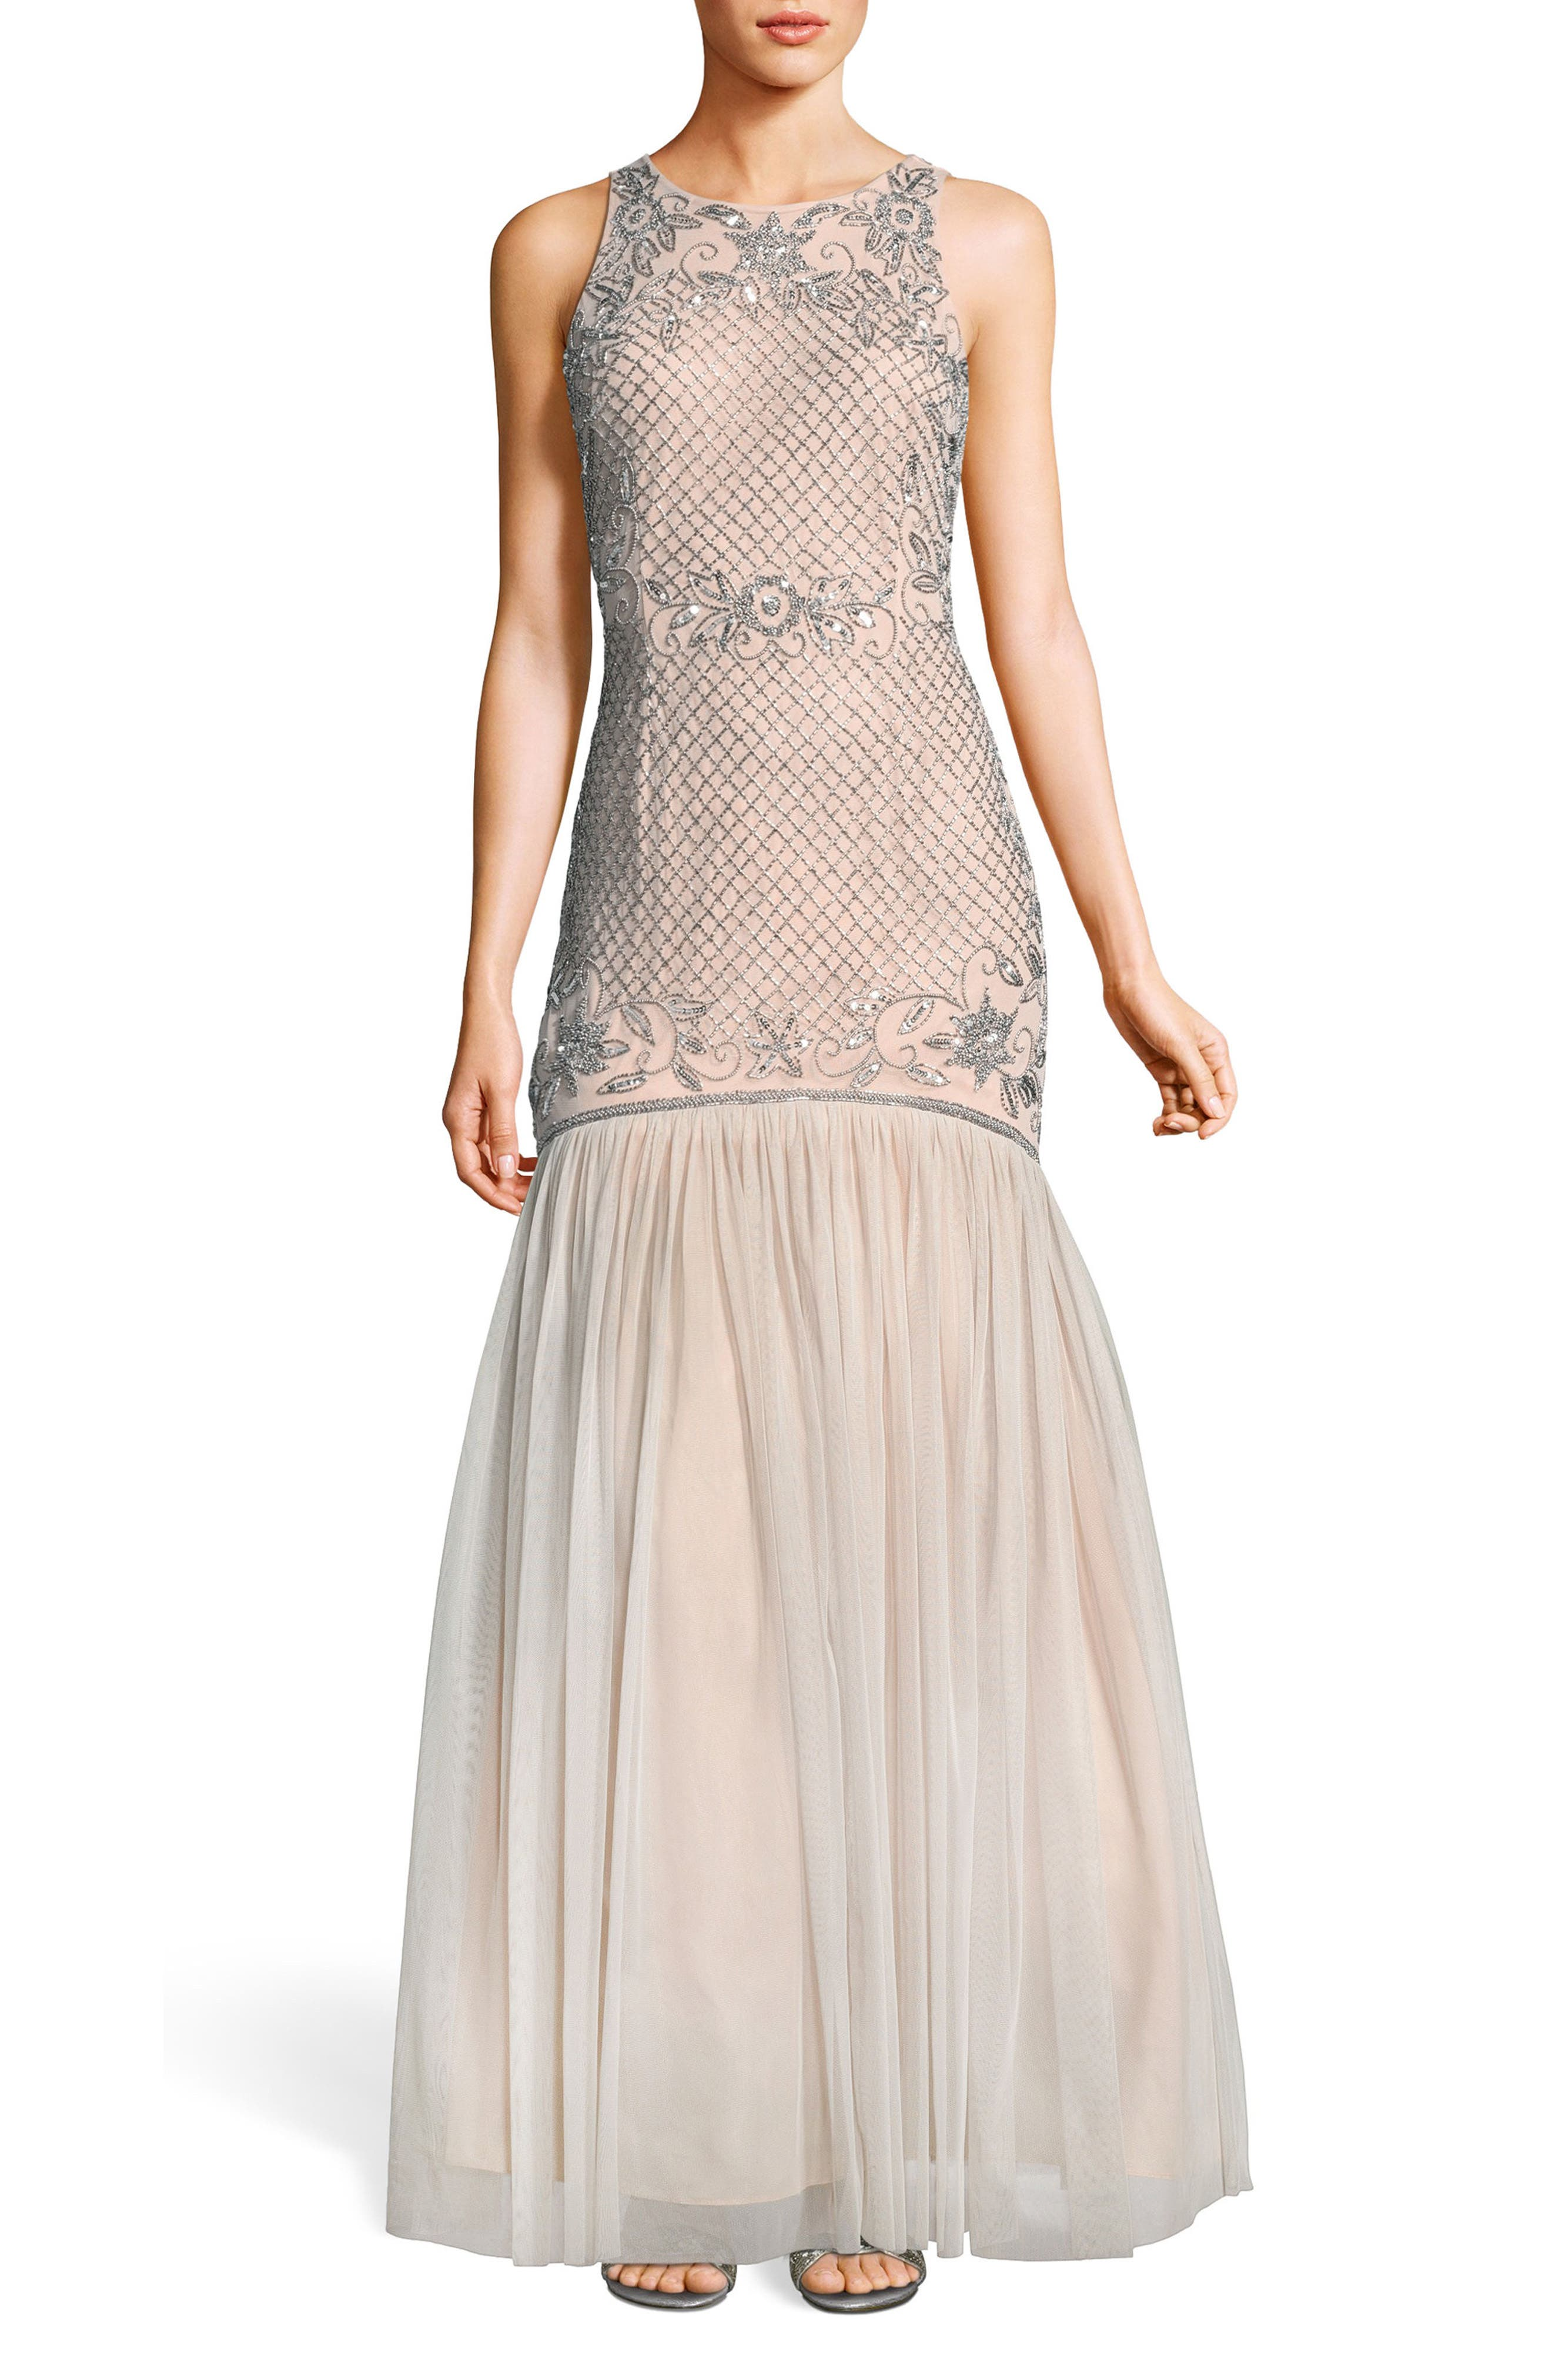 Beaded Tulle Trumpet Gown,                             Main thumbnail 1, color,                             Silver/ Nude